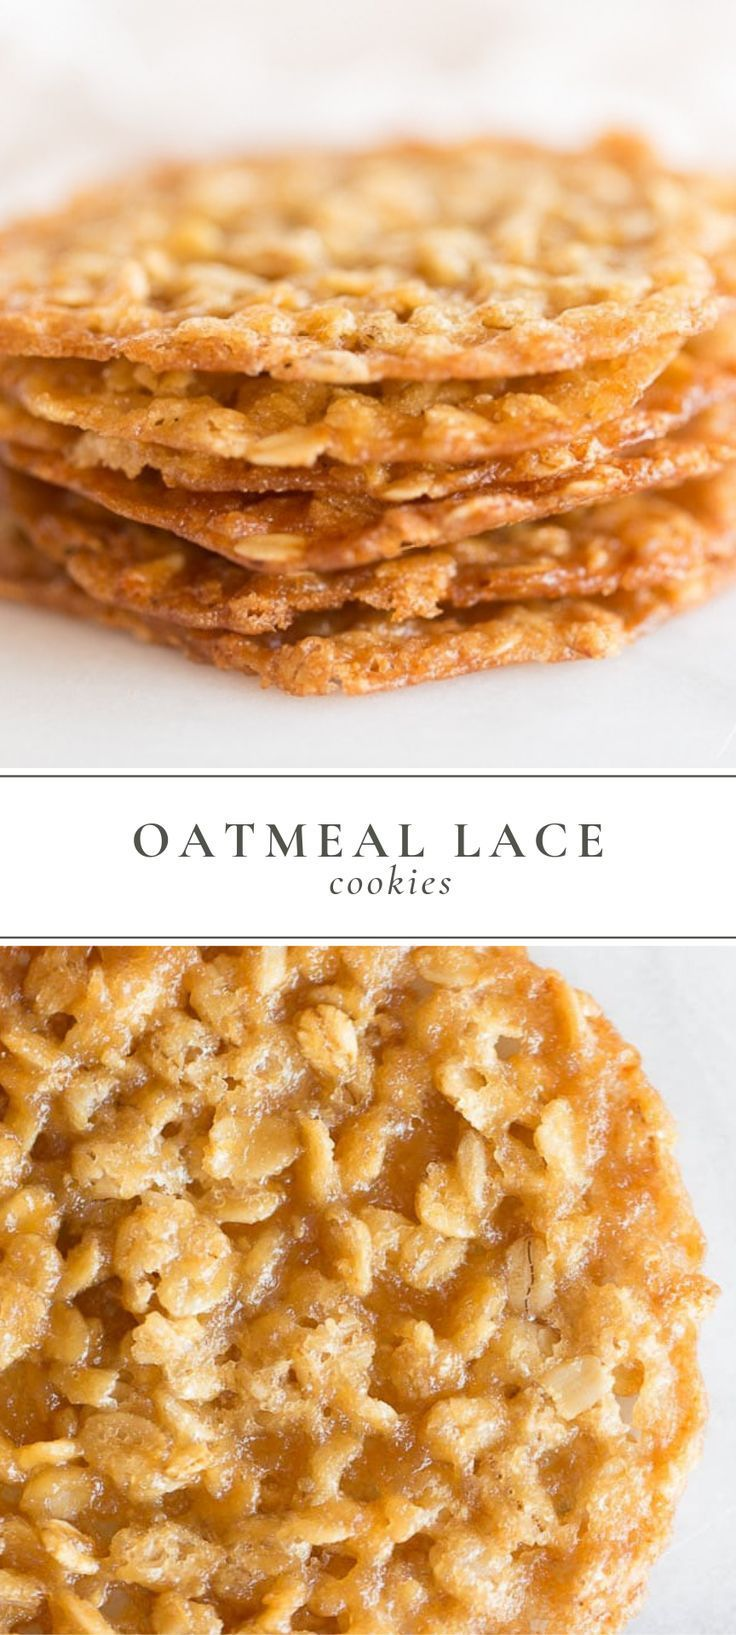 Oatmeal Lace Cookies are a thin chewy oatmeal cookie with a deliciously sugary taste that are stackable for easy gifting Lace Cookies are made with just 7 staple ingredie...